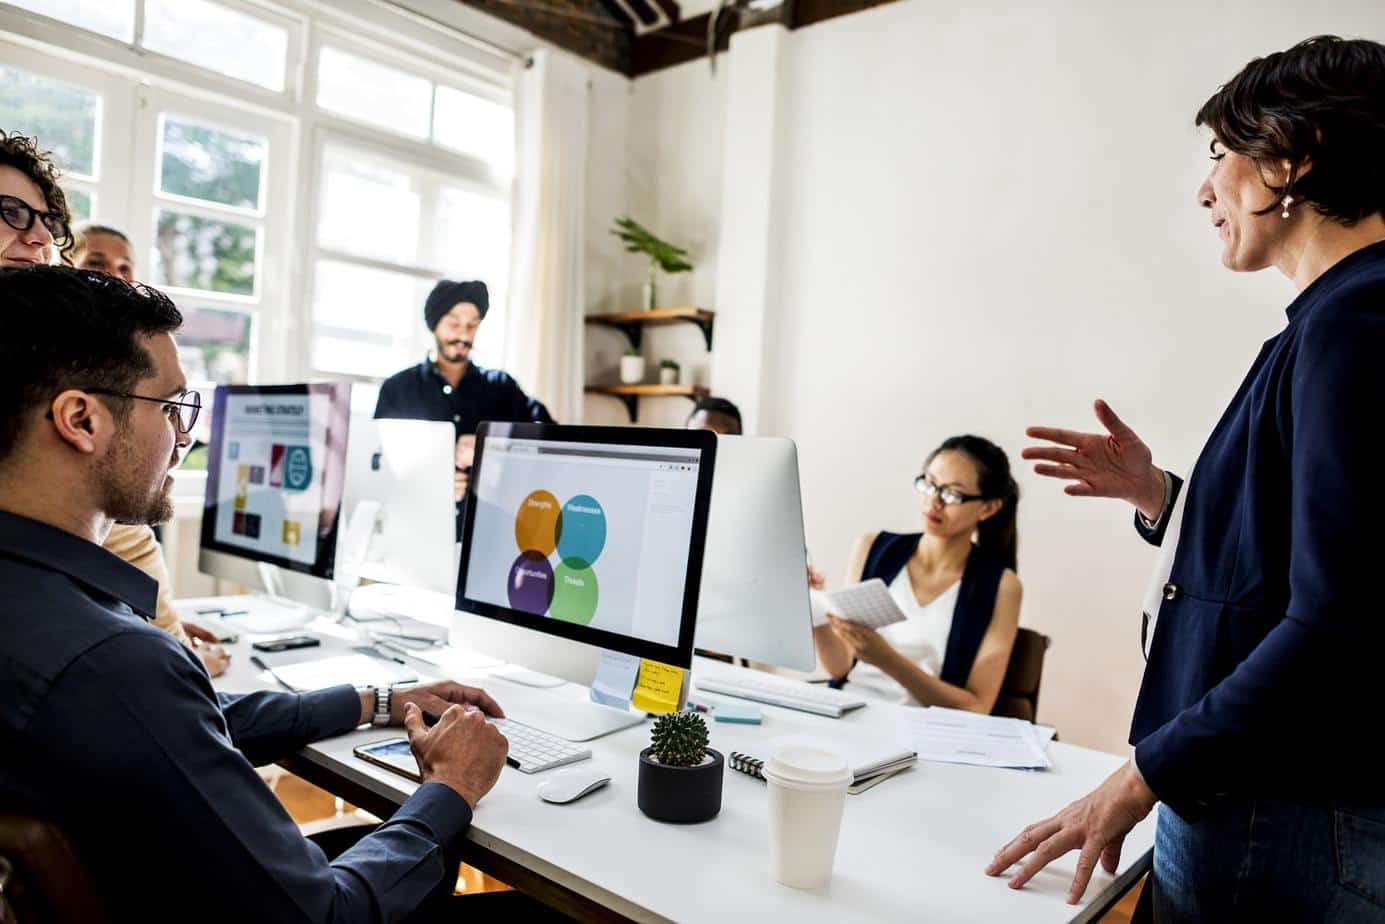 How to motivate employees to be more productive